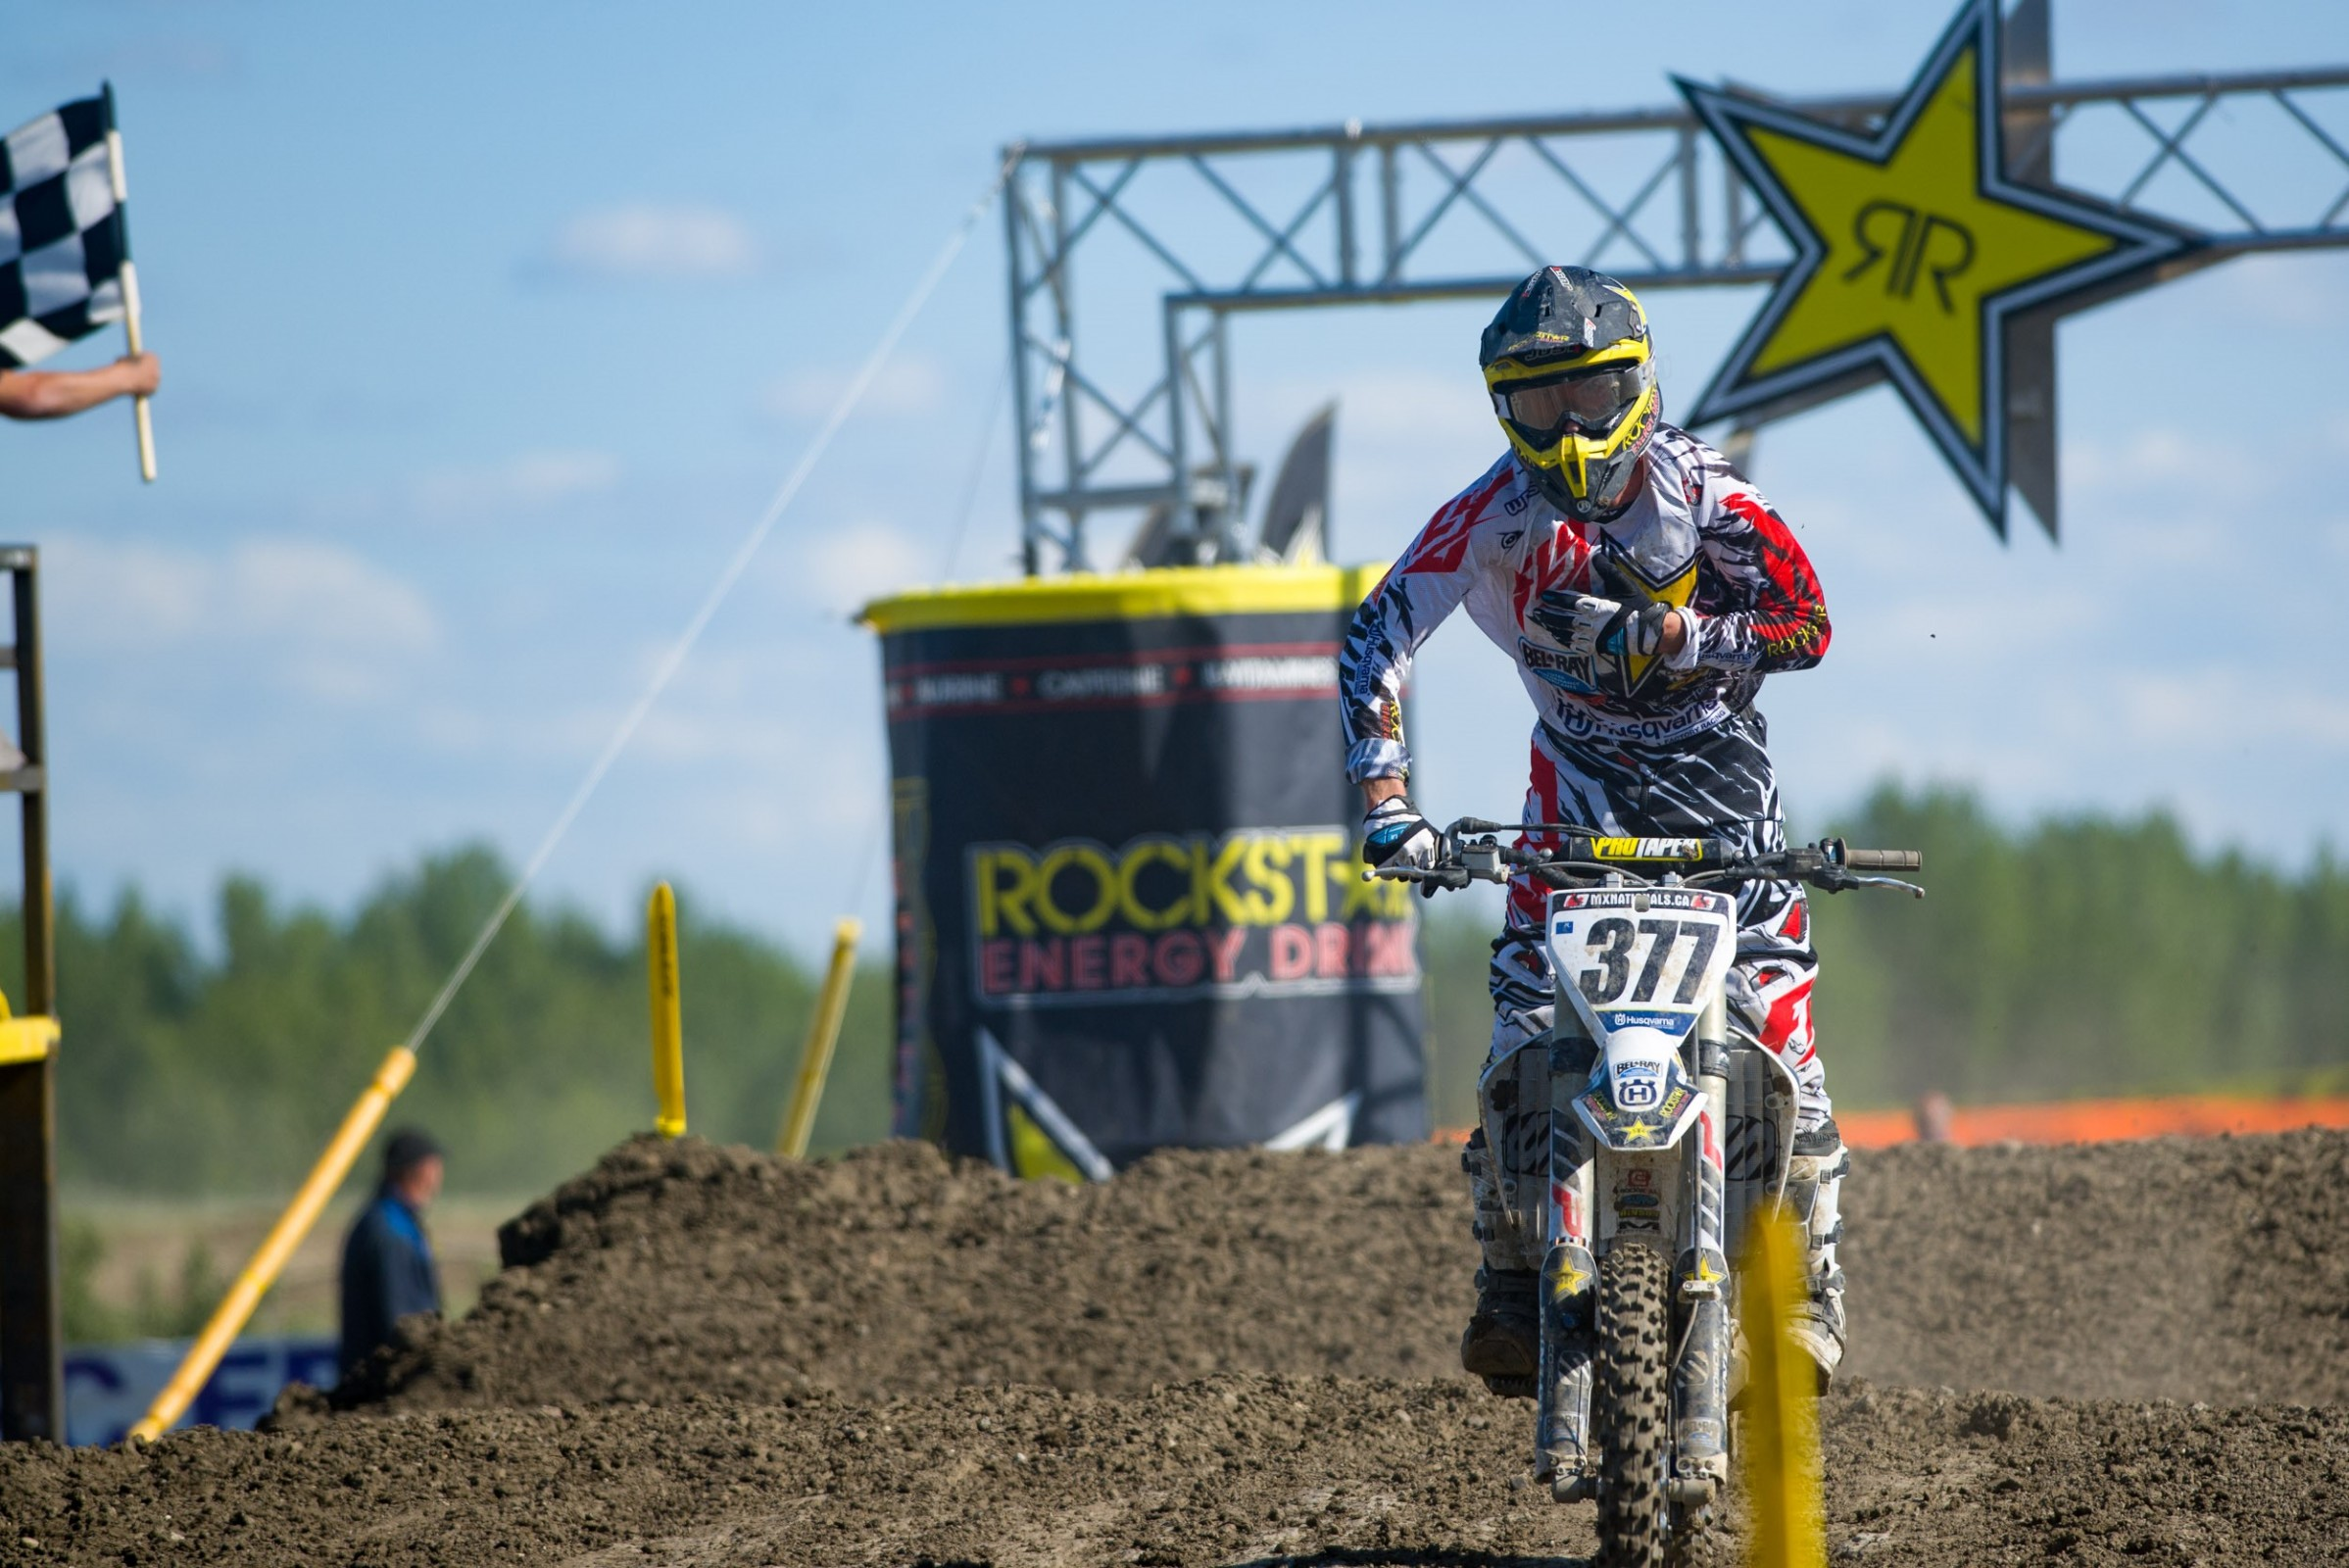 Rockstar Husqvarna's Christophe Pourcel came out flying in Round 4 and took the fastest qualifier position on the last lap of practice.